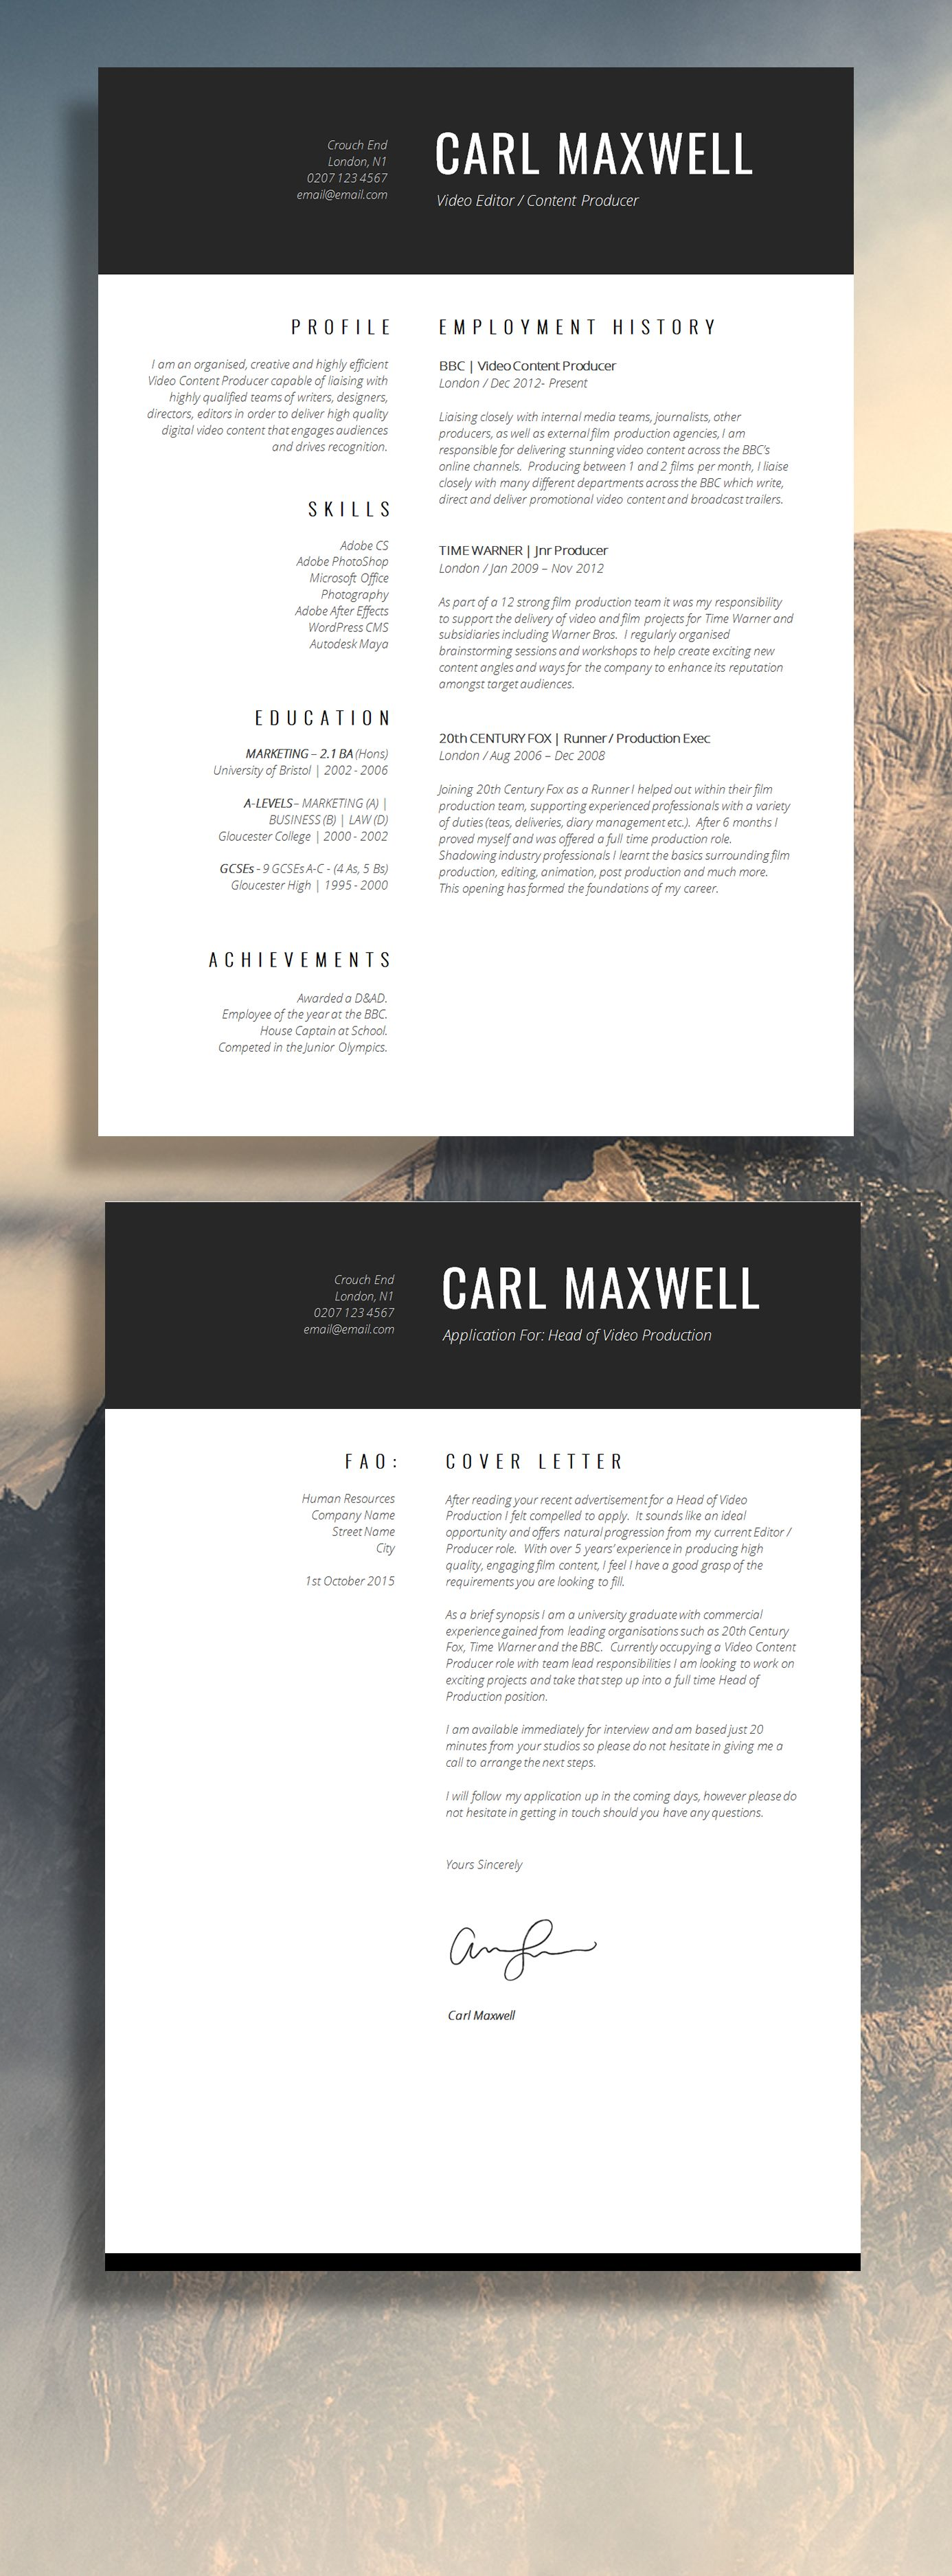 Professional Resume Template | CV Template | Resume Advice | Cover ...